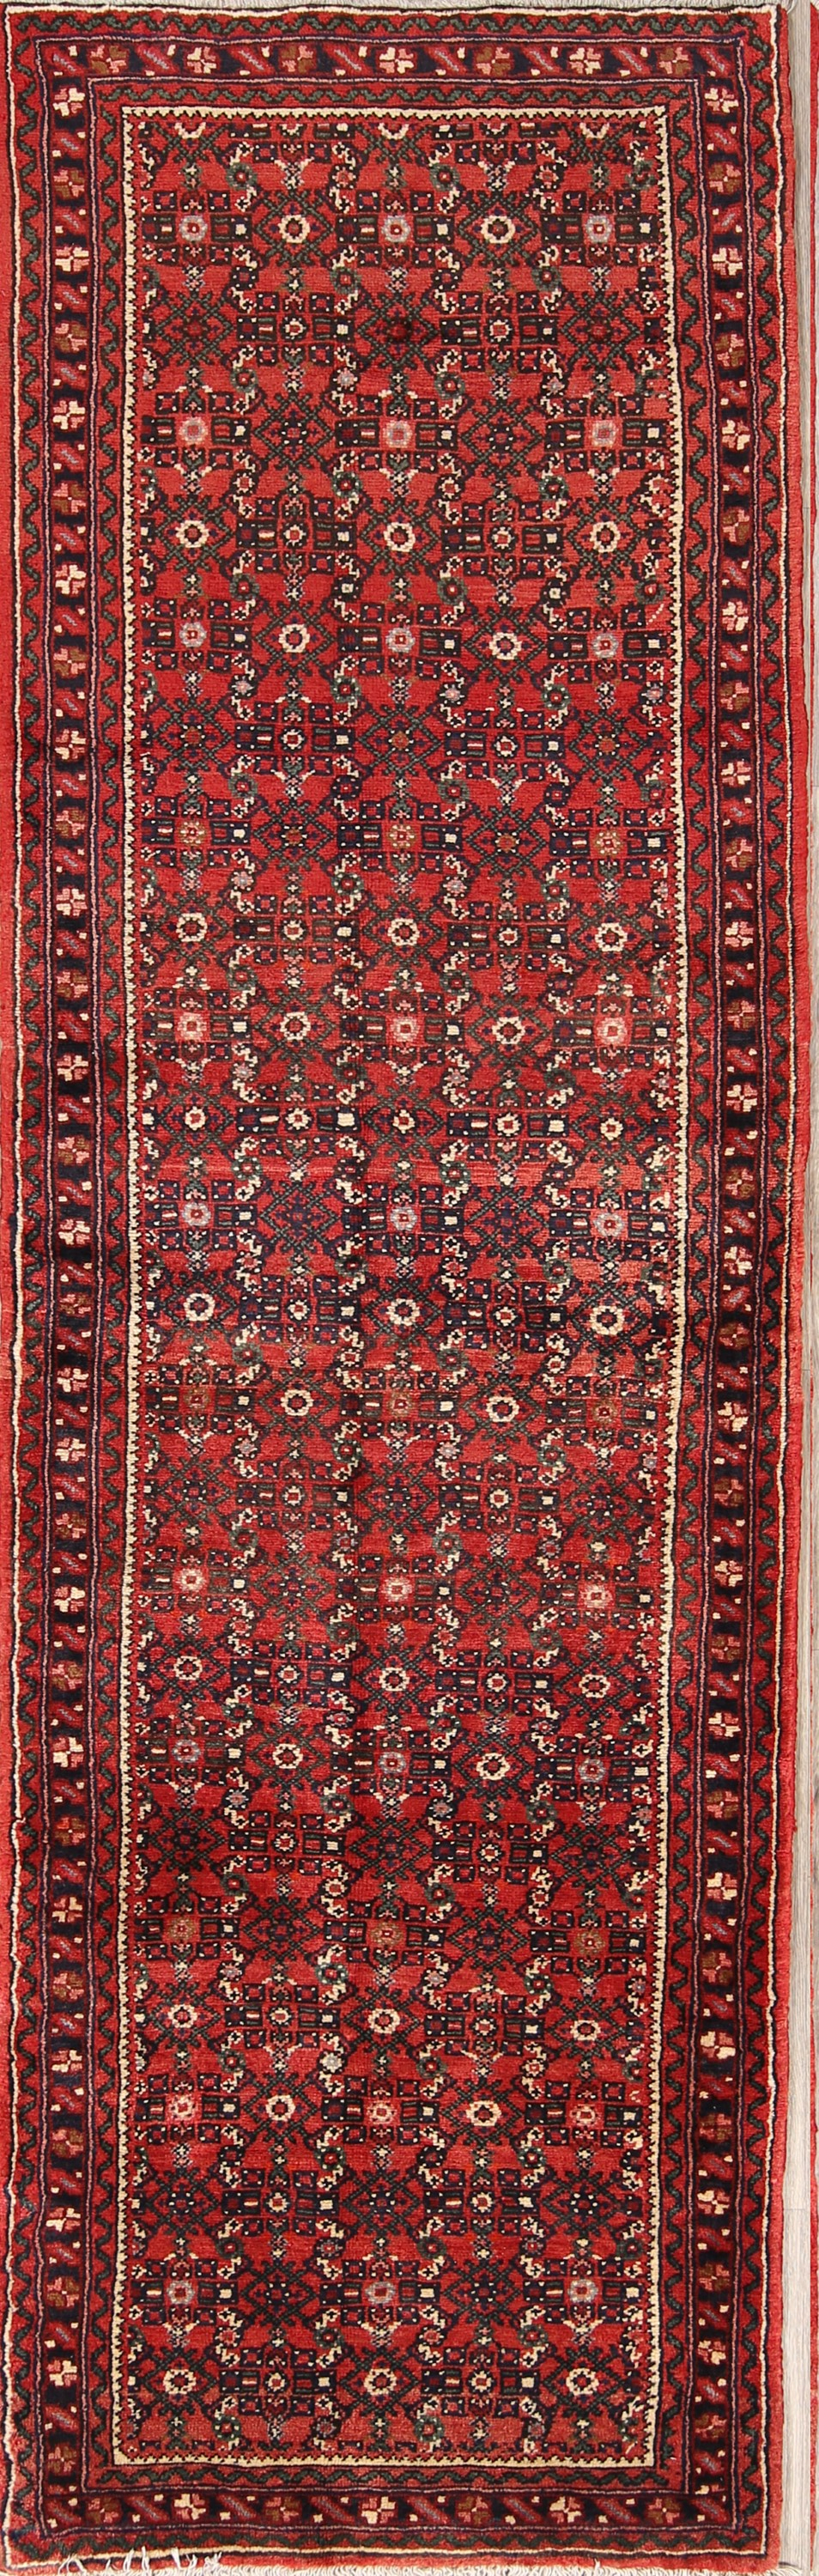 All-Over Floral 3x10 Hamedan Persian Rug Runner